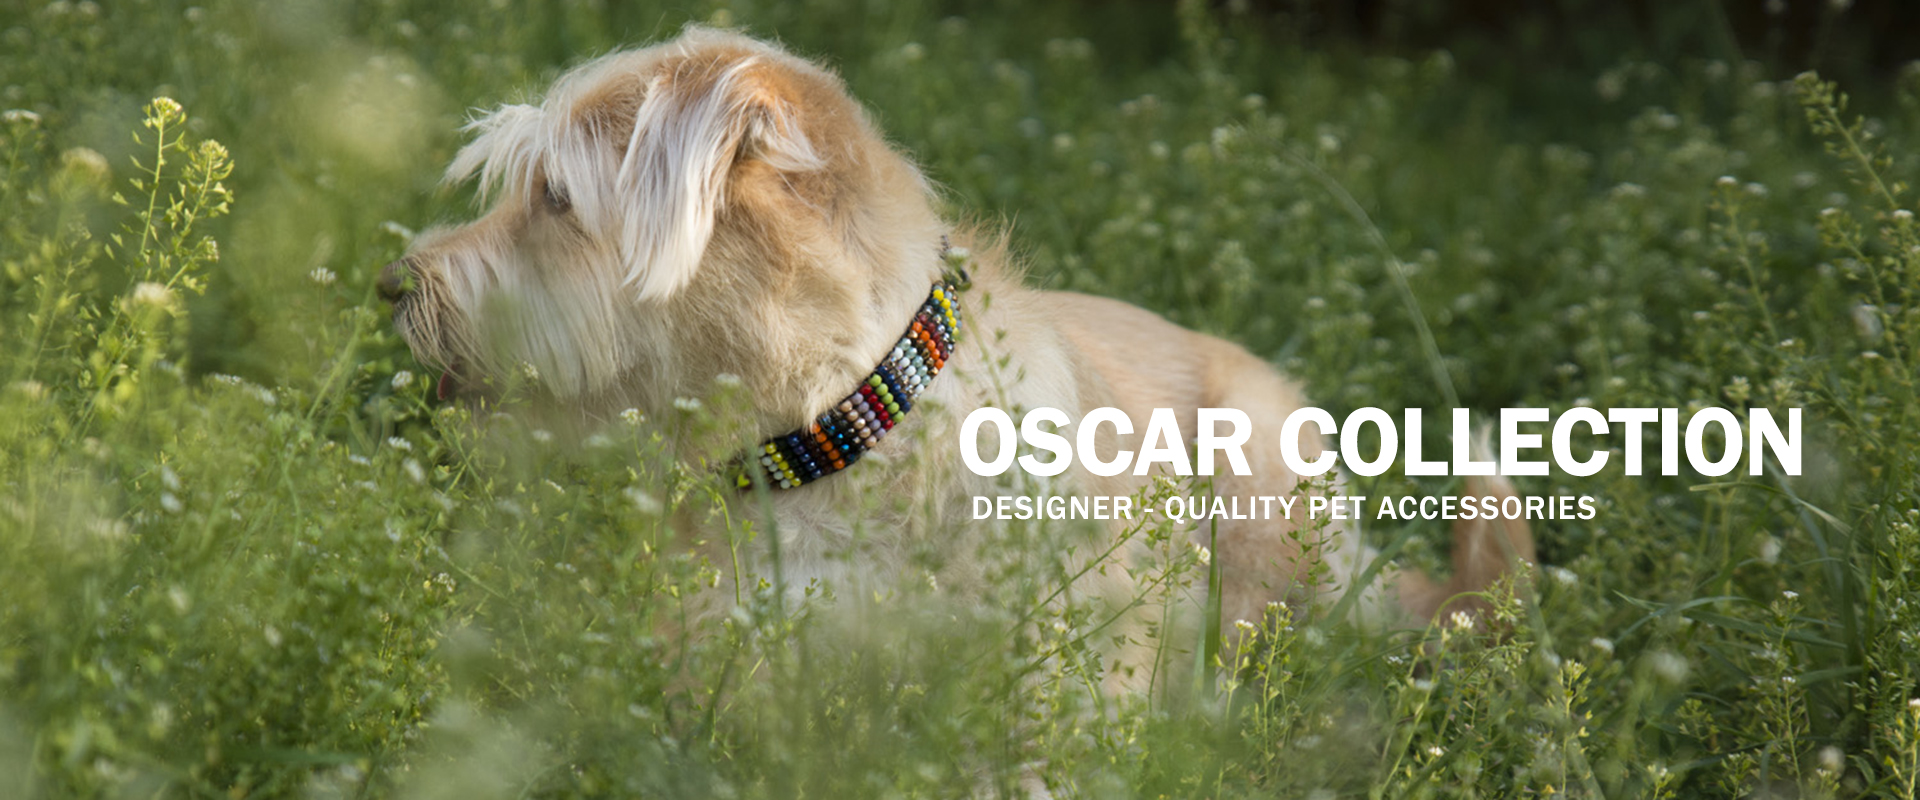 Oscar Collection   Designer-quality pet accessories by zikos